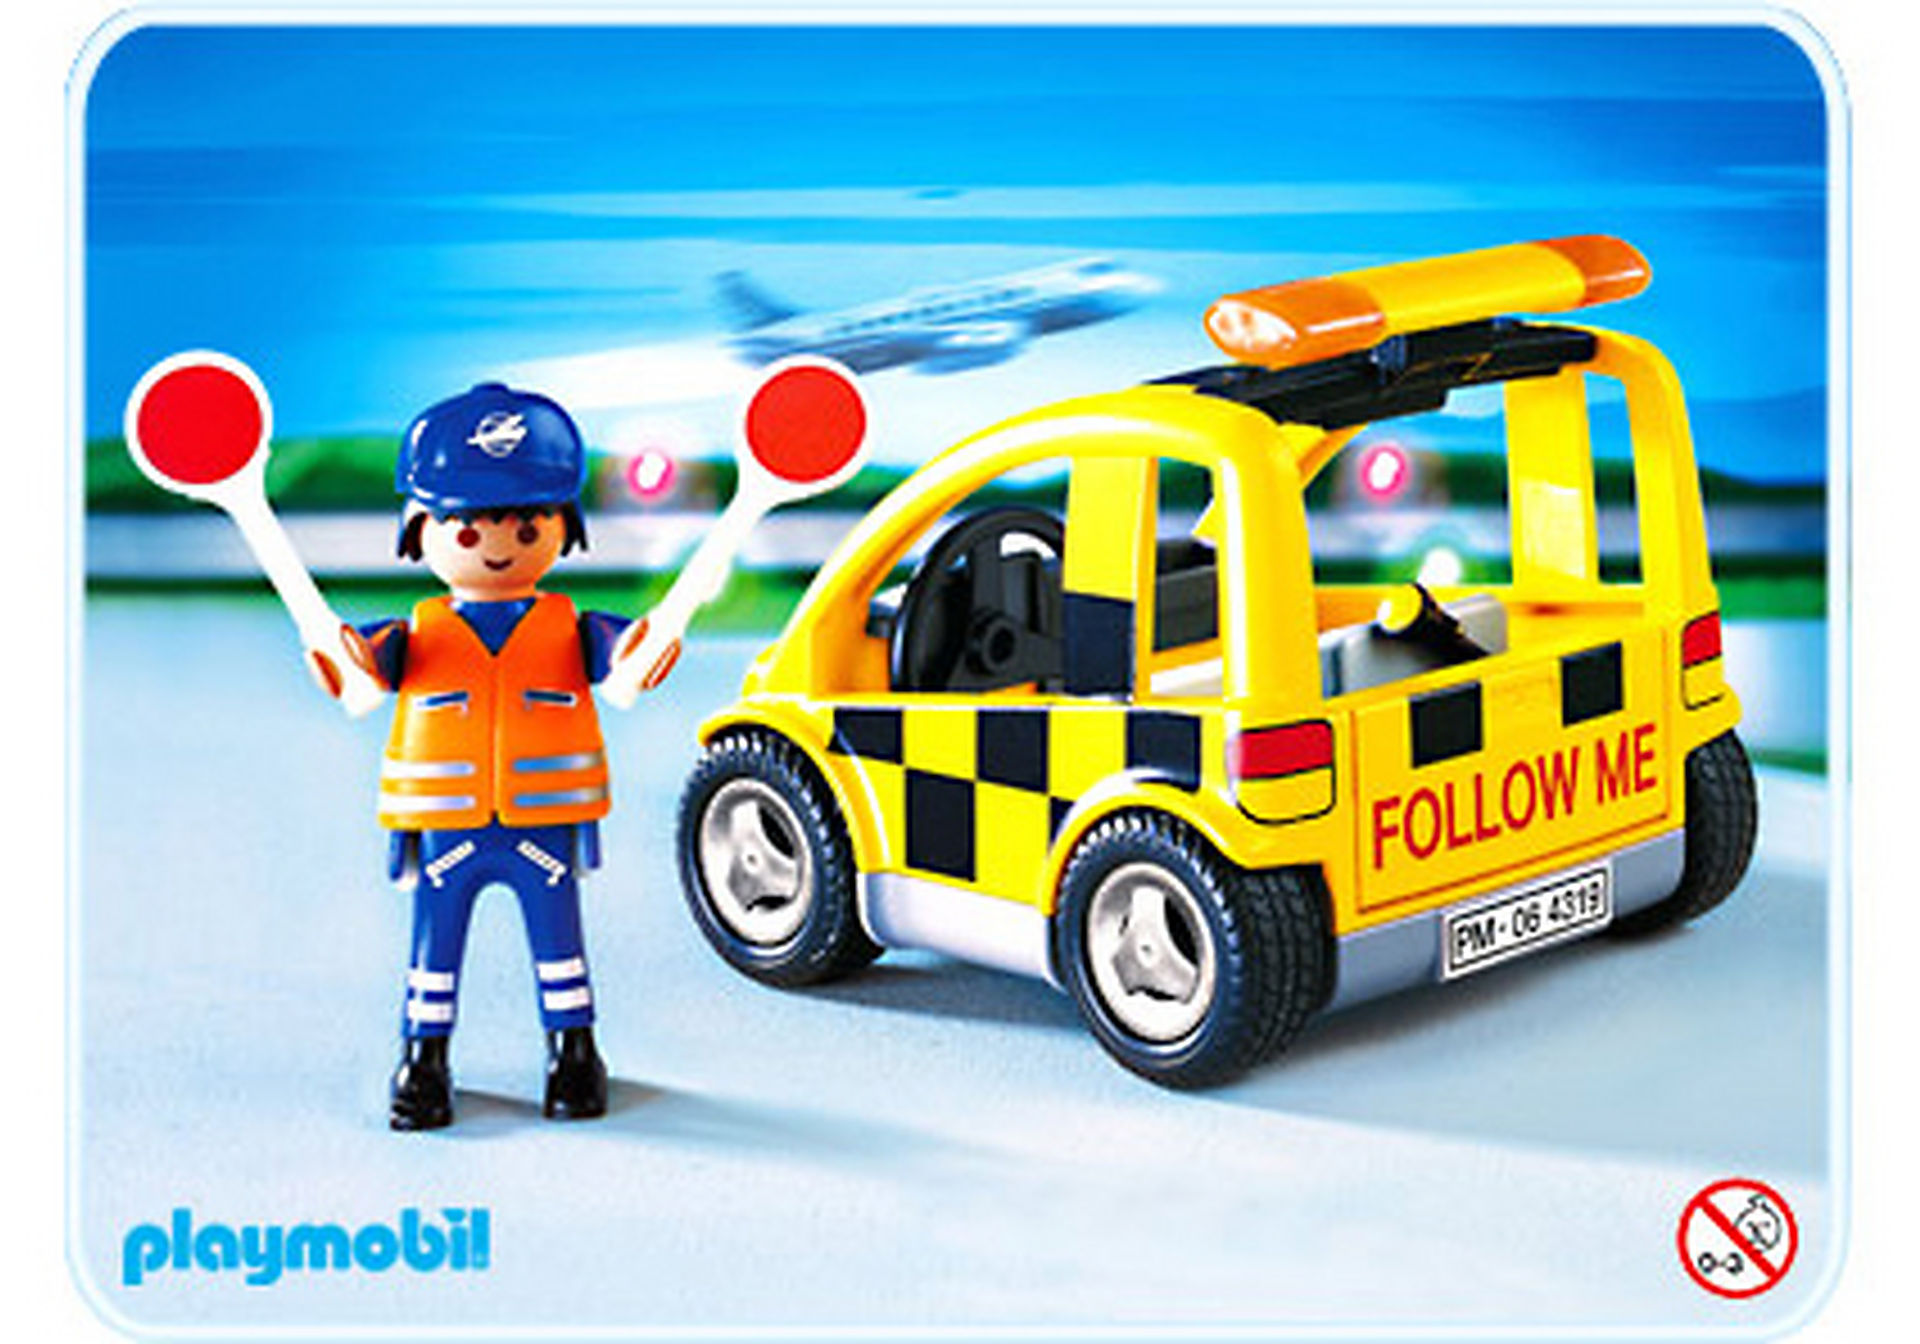 http://media.playmobil.com/i/playmobil/4319-A_product_detail/Agent de signalisation / voiture